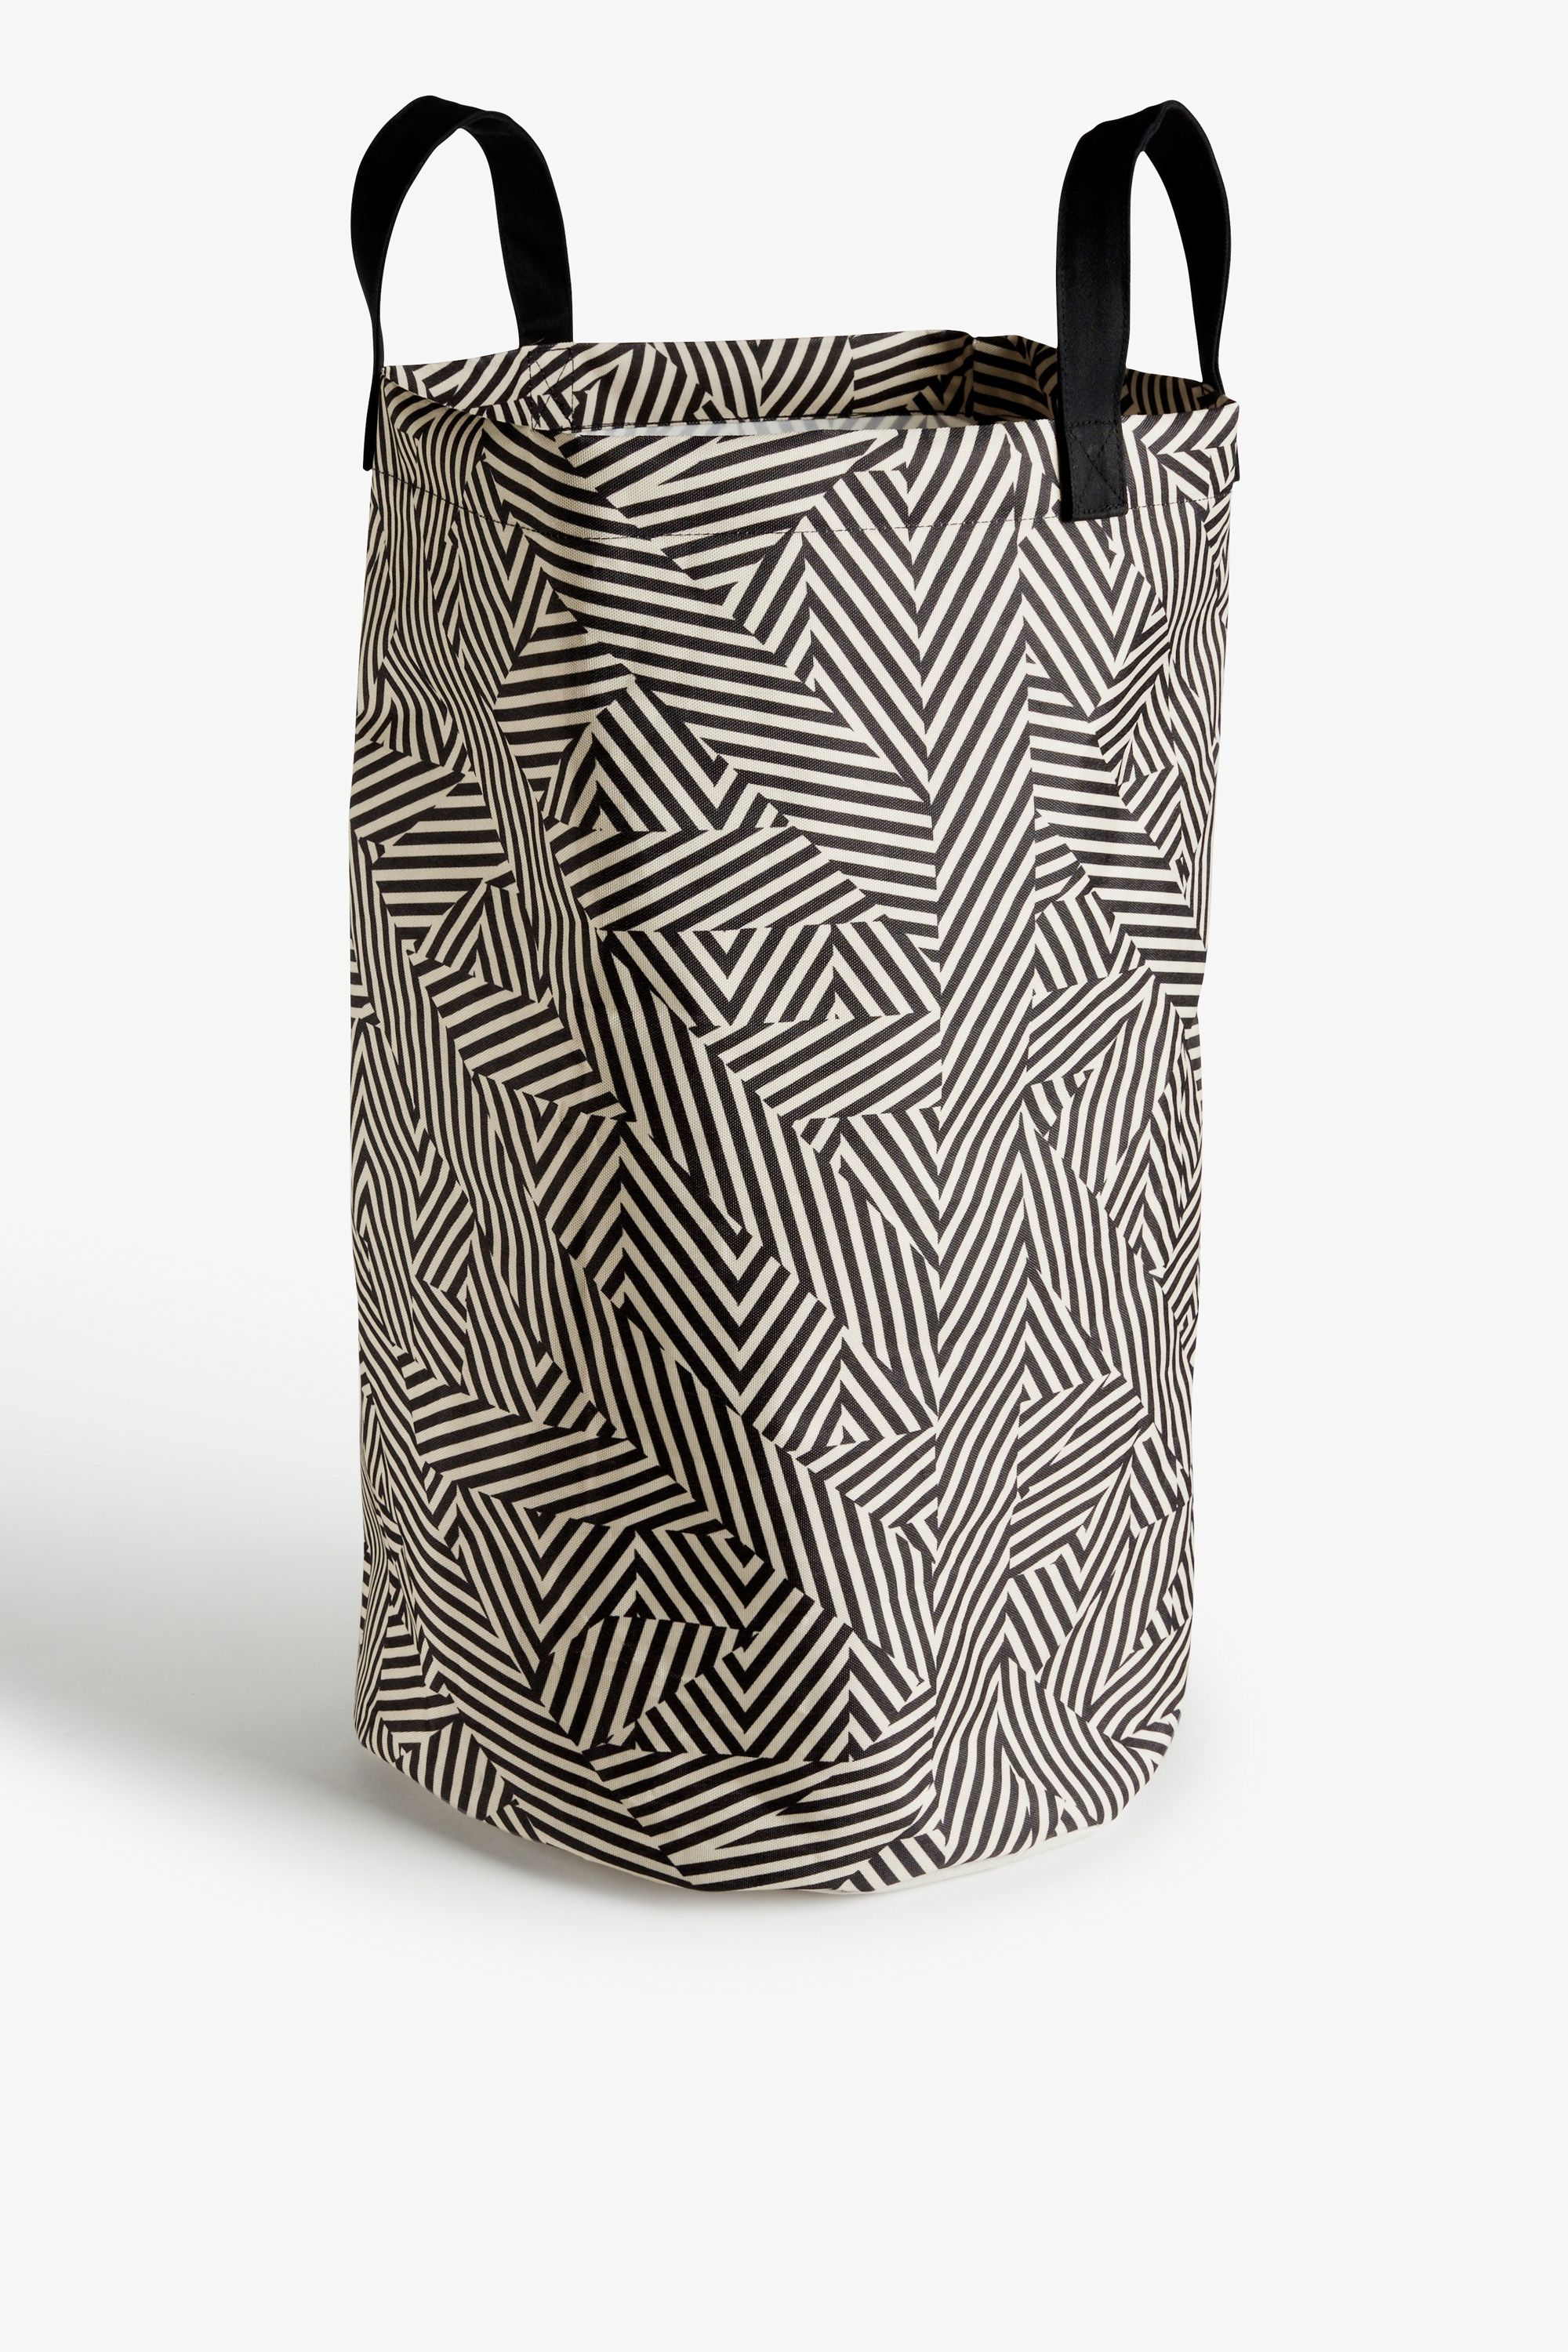 The Most Perfect Laundry Bag To Tote Too And From With In A Print That S Ng Whole Lot Of Artsy Energy Why